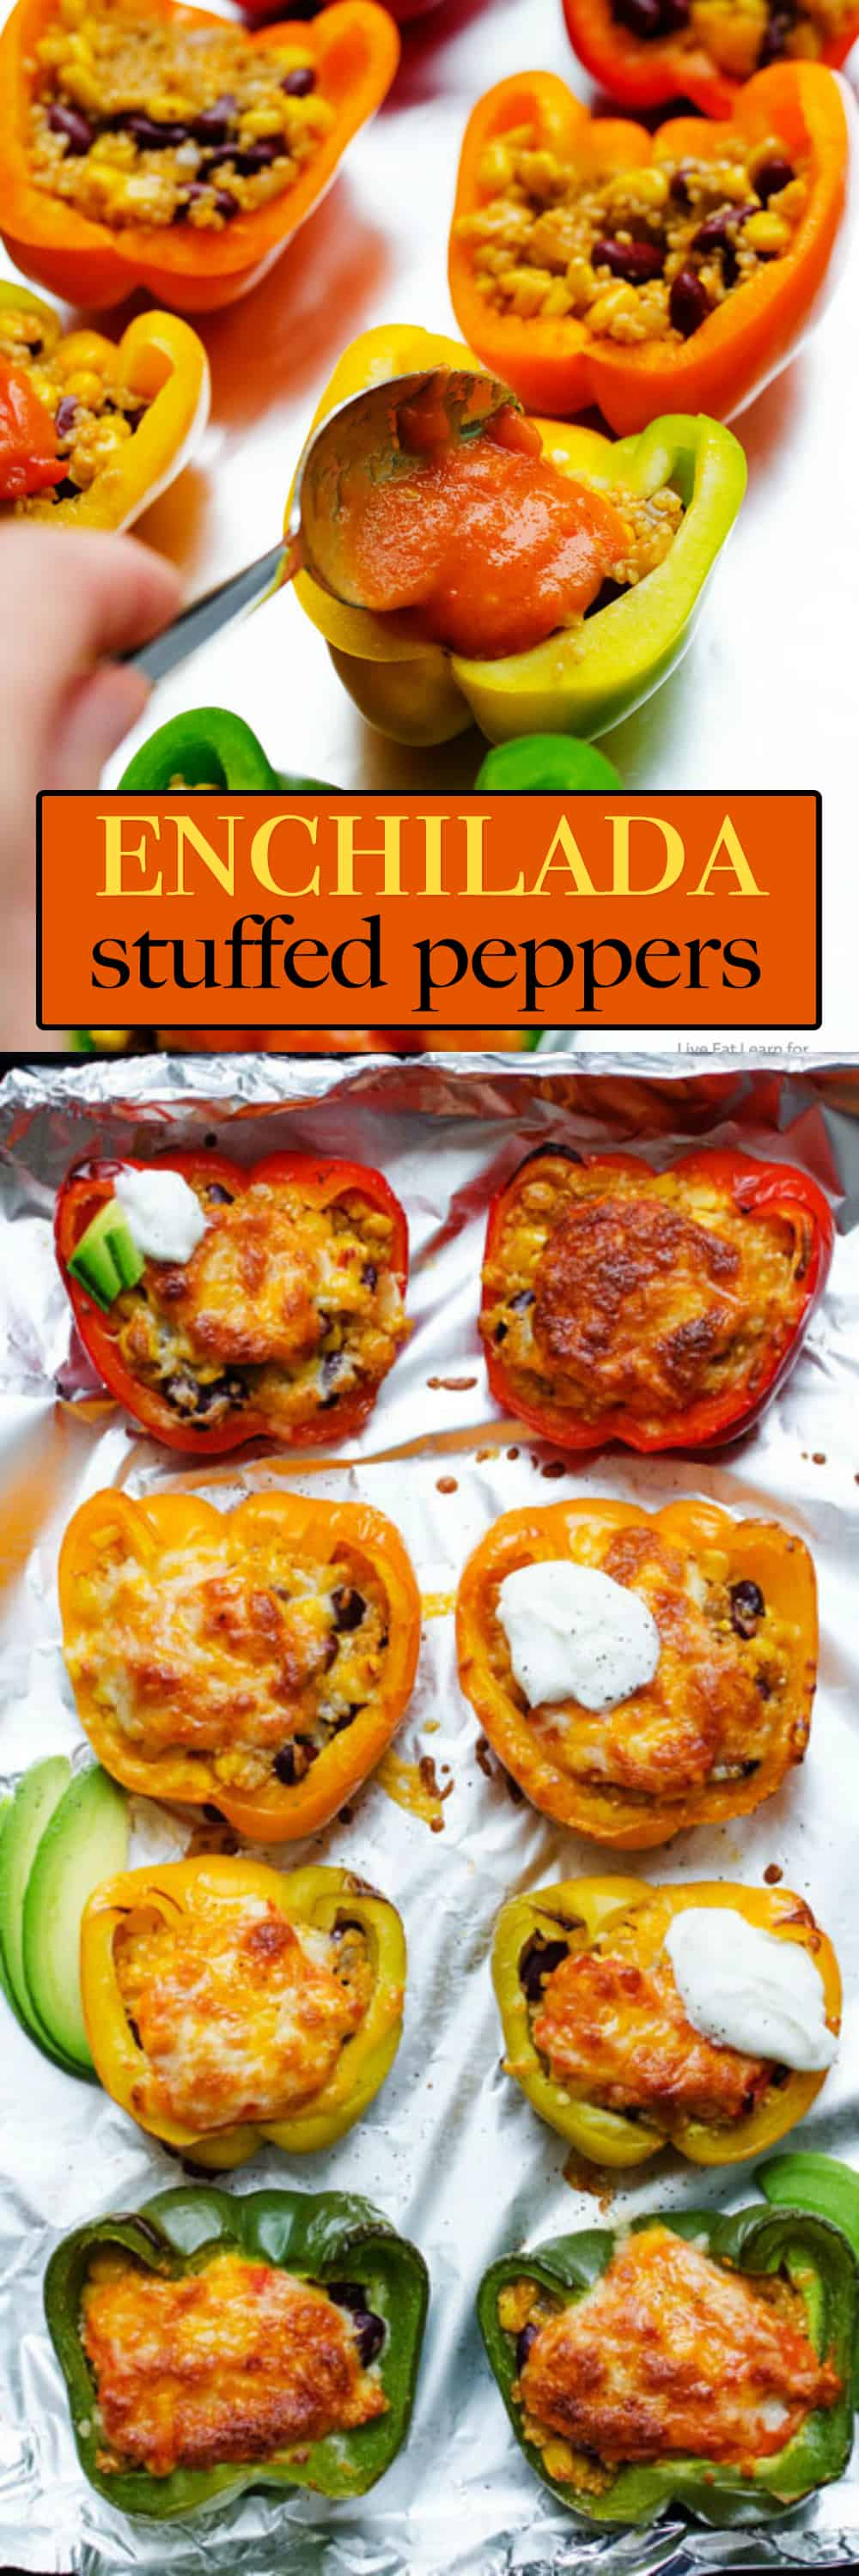 These Enchilada Stuffed Peppers are packed with spiced quinoa, beans, corn, shredded Monterey jack cheese then drizzled with a simple homemade enchilada sauce!